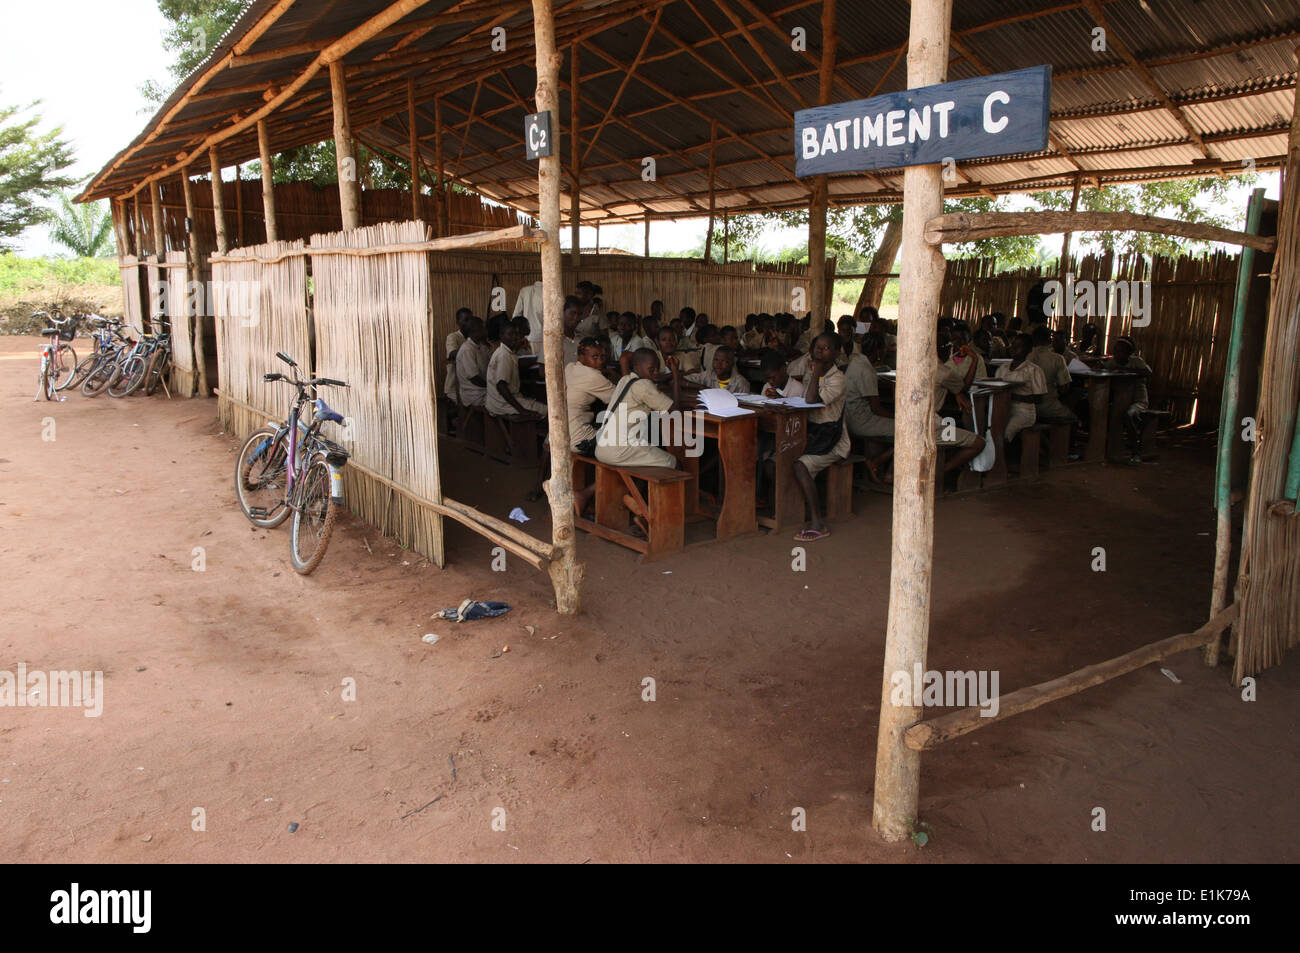 Secondary school in Africa. - Stock Image